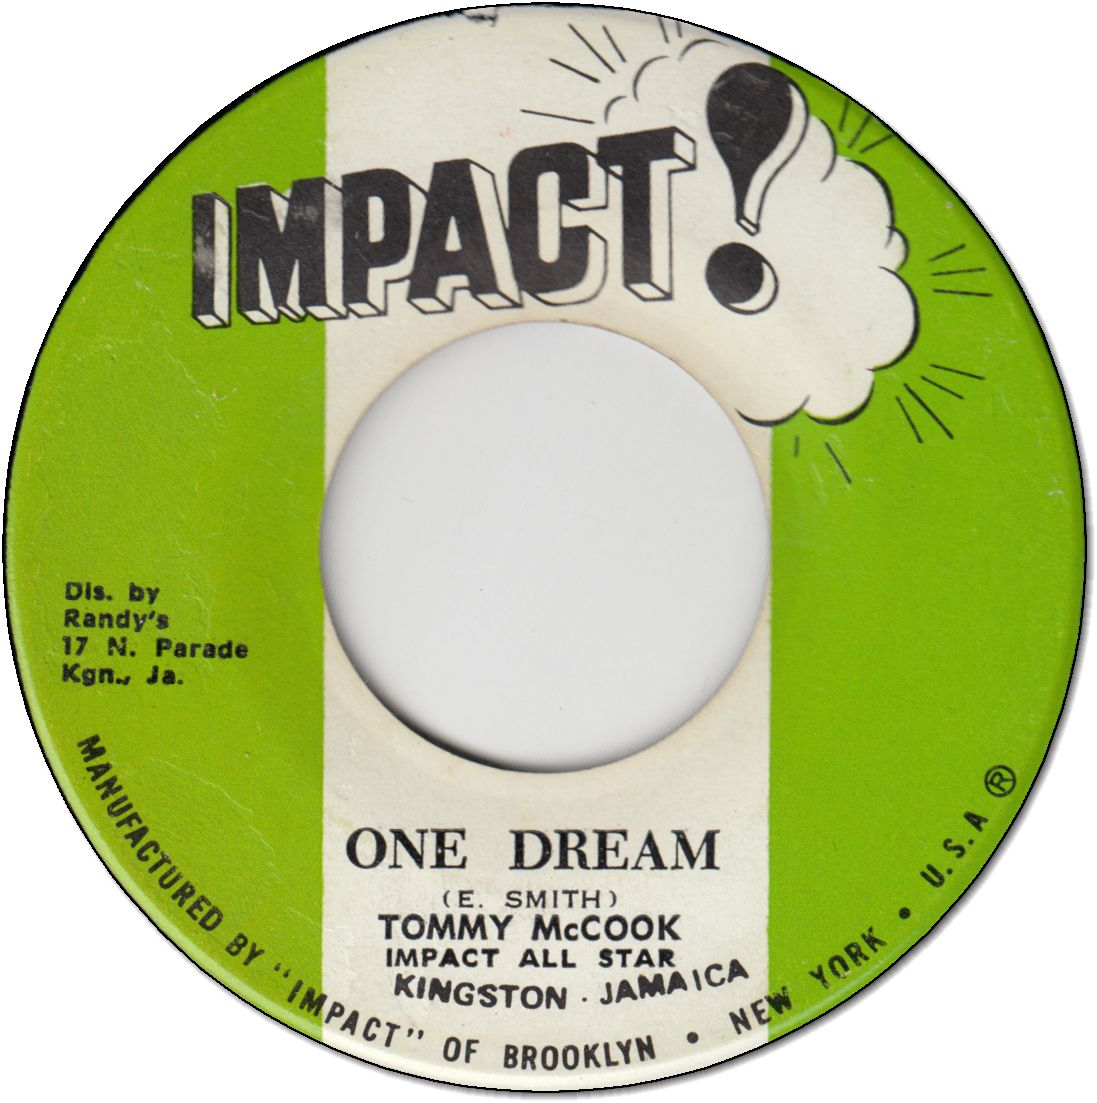 ONE DREAM (VG+)